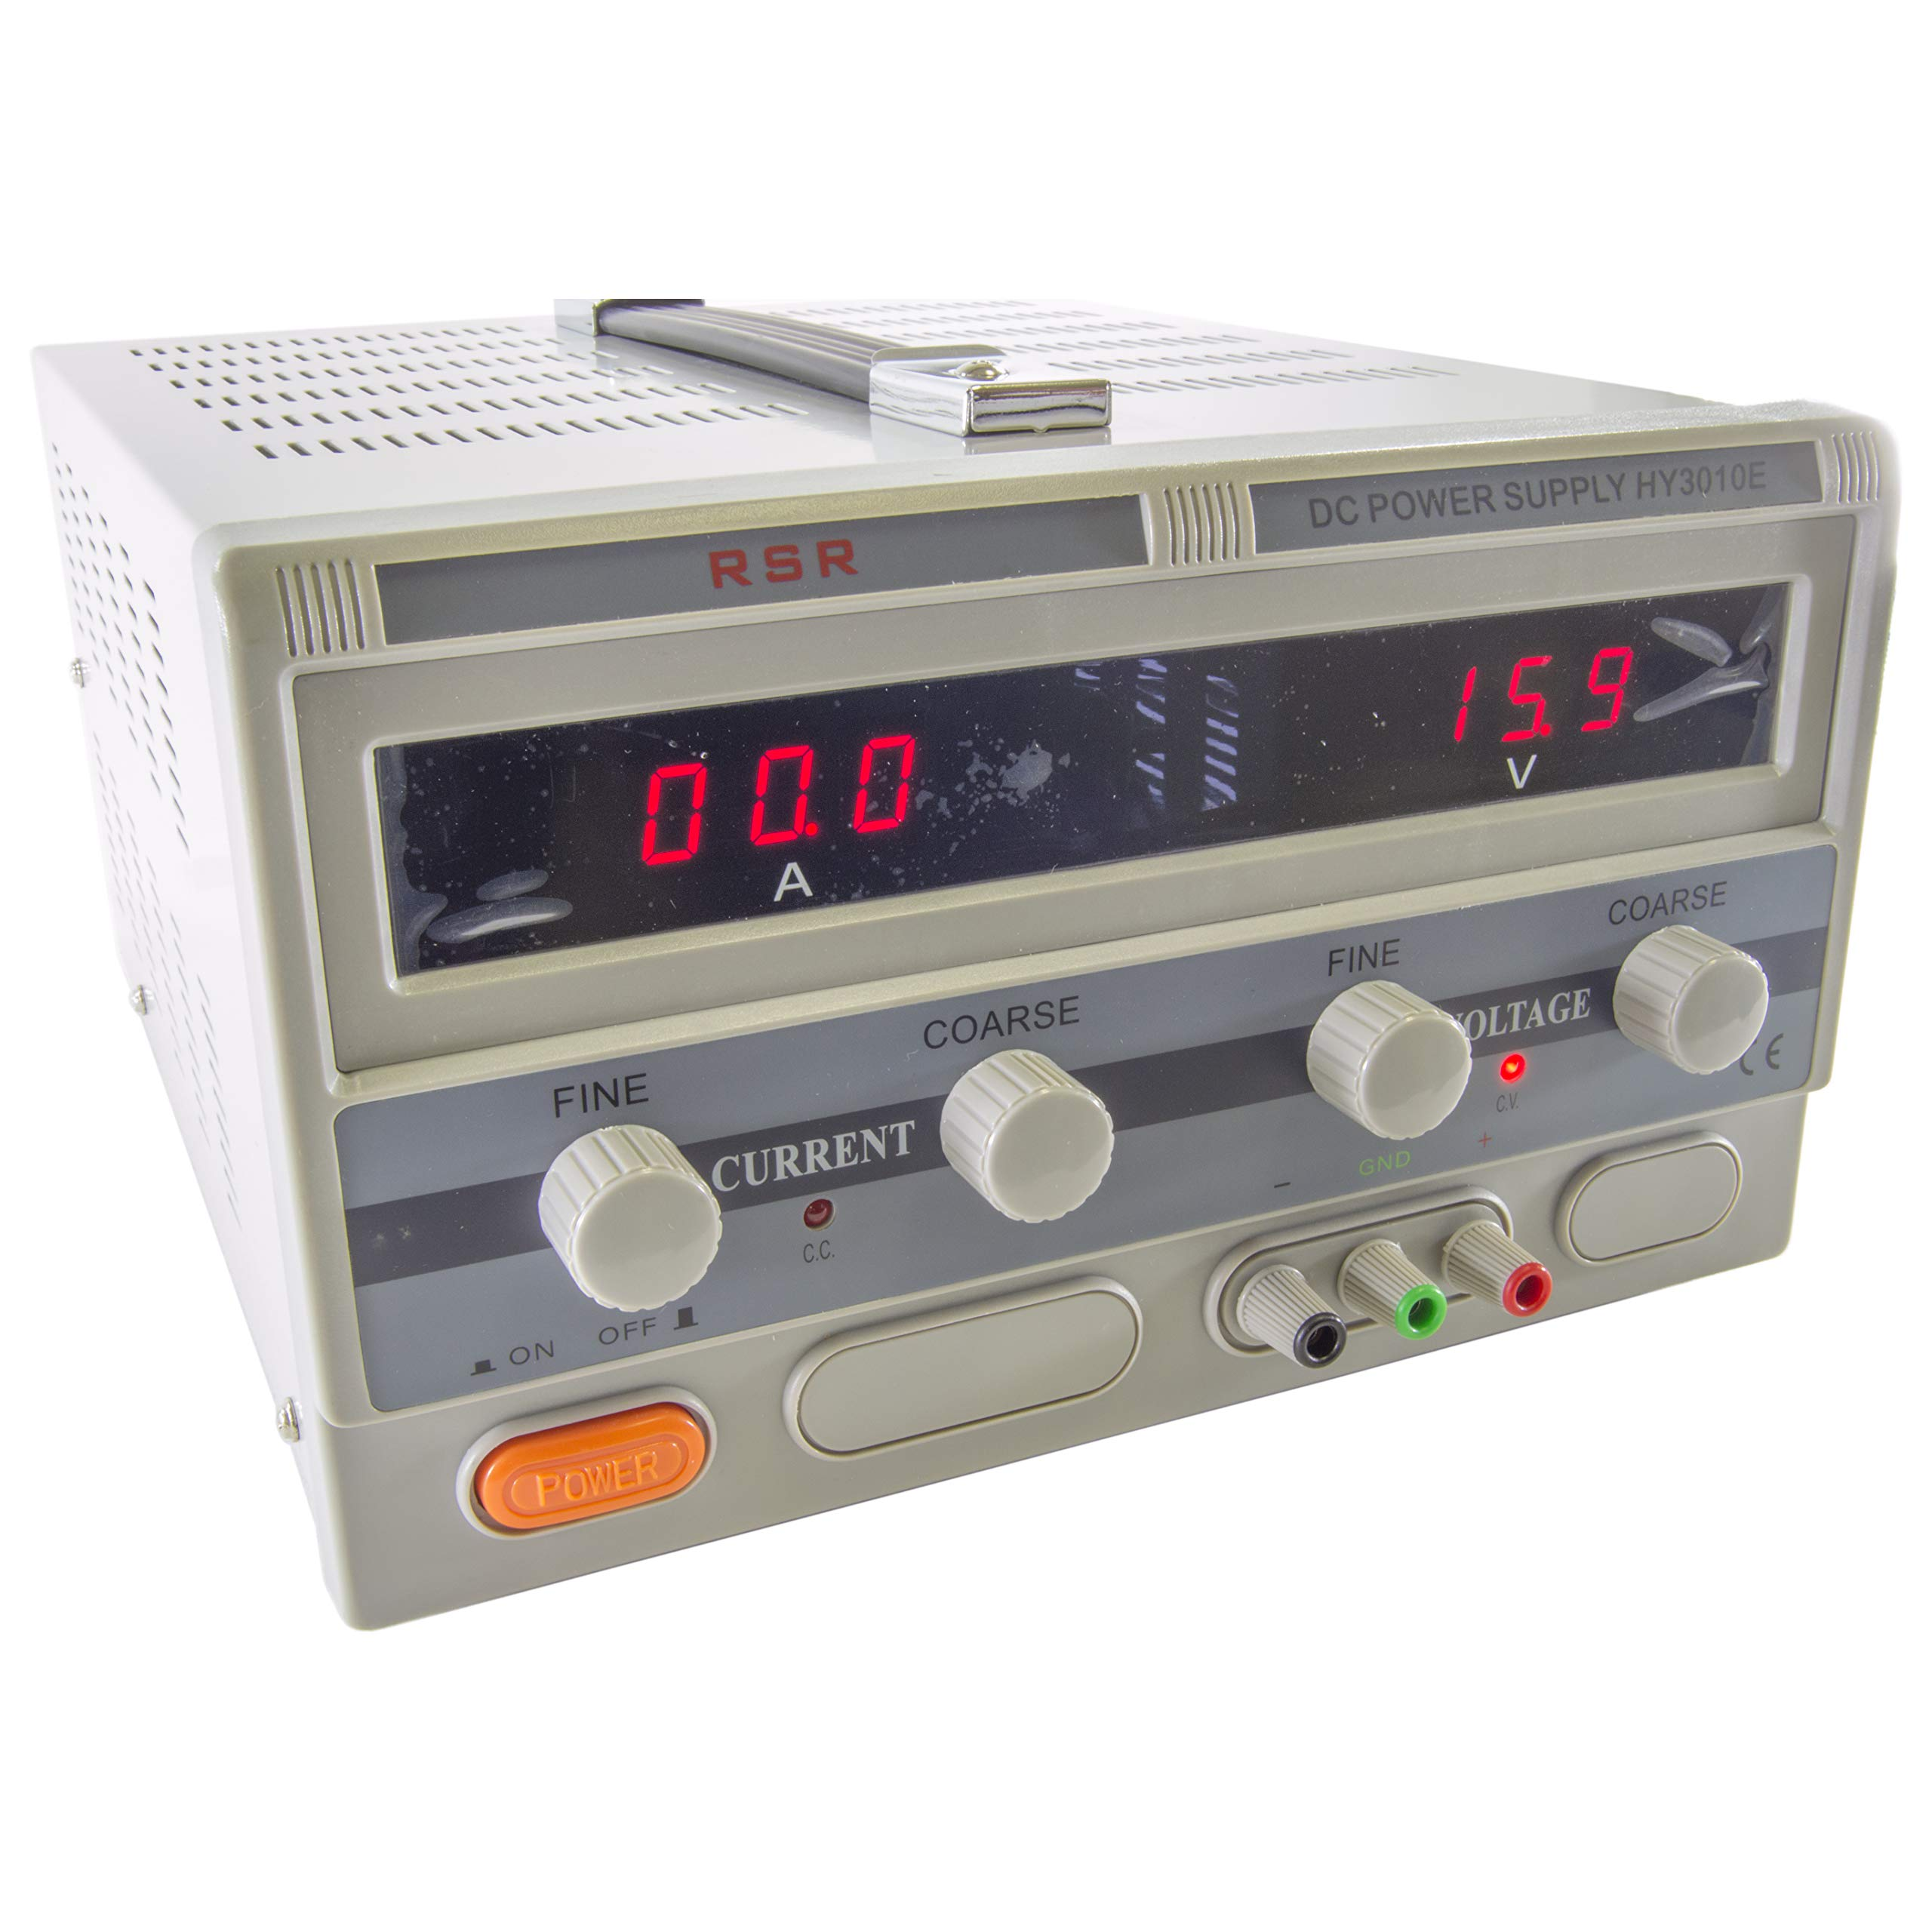 Science Purchase HY3010E Variable Single Output, DC Power Supply, Digital 0 to 30V @ 0-10A